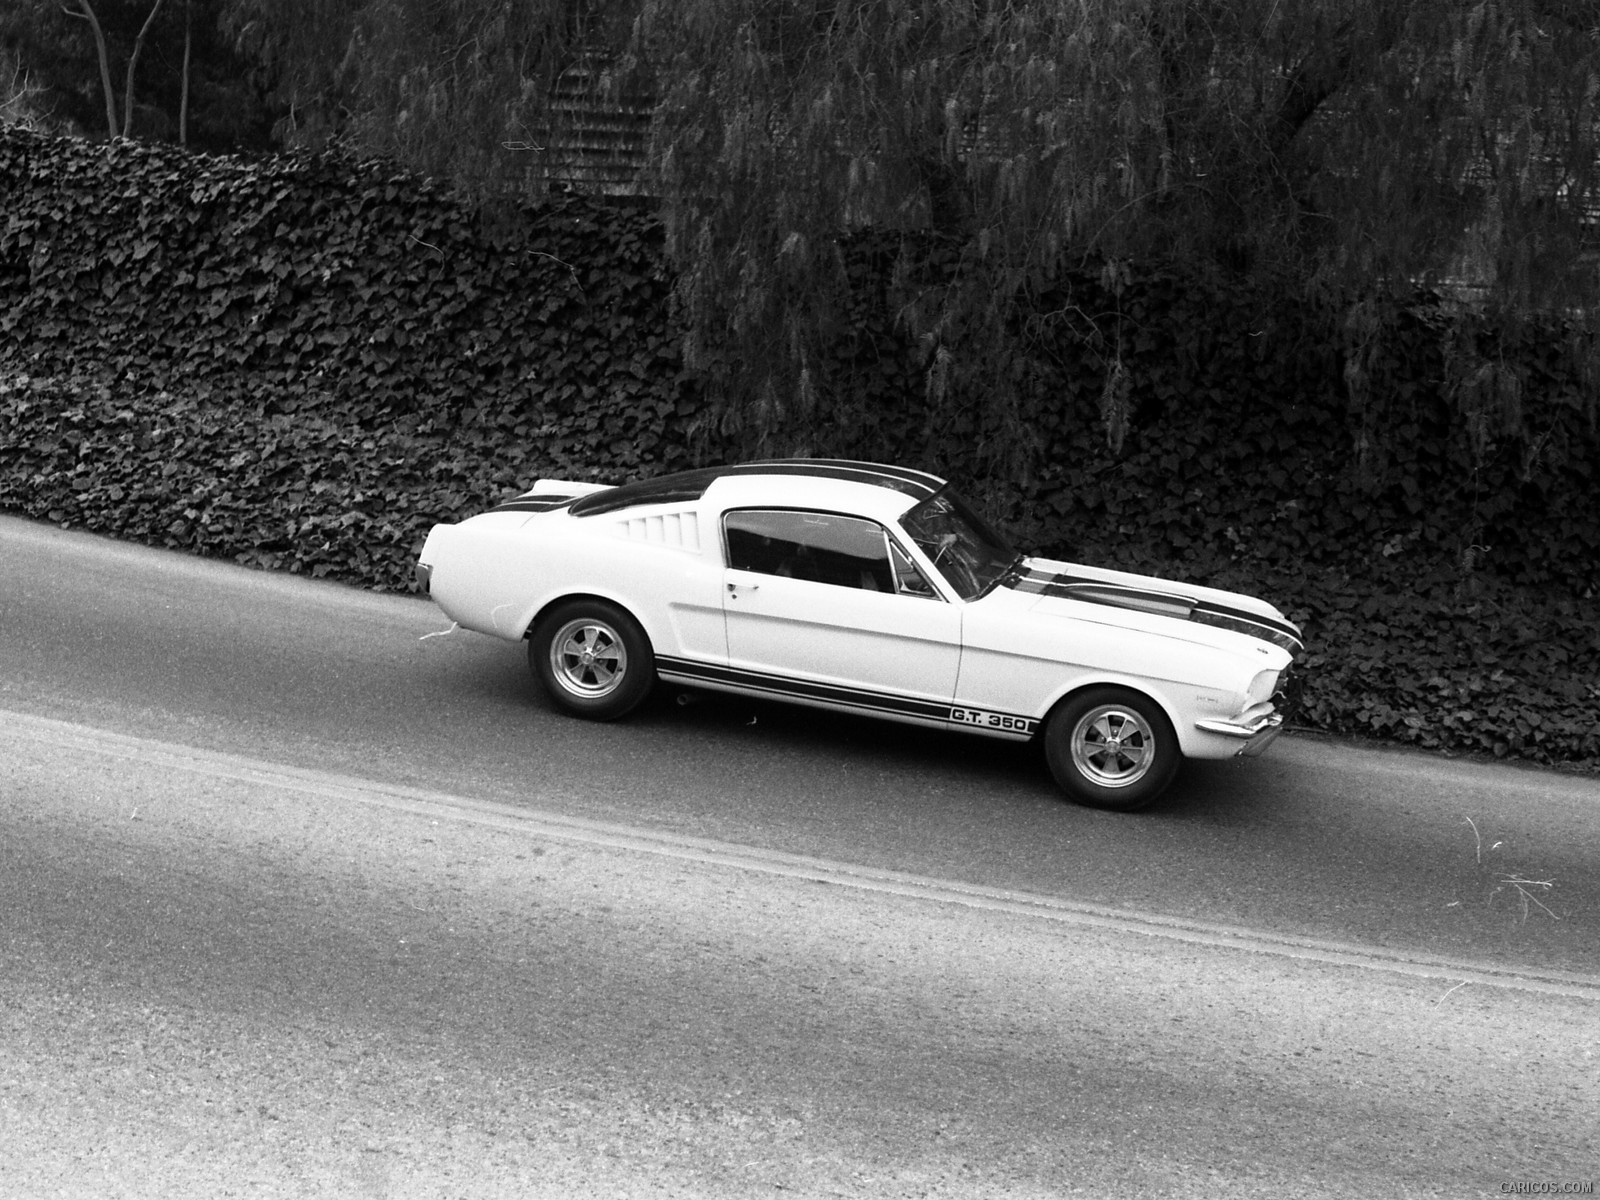 Ford Mustang Shelby GT350 photos